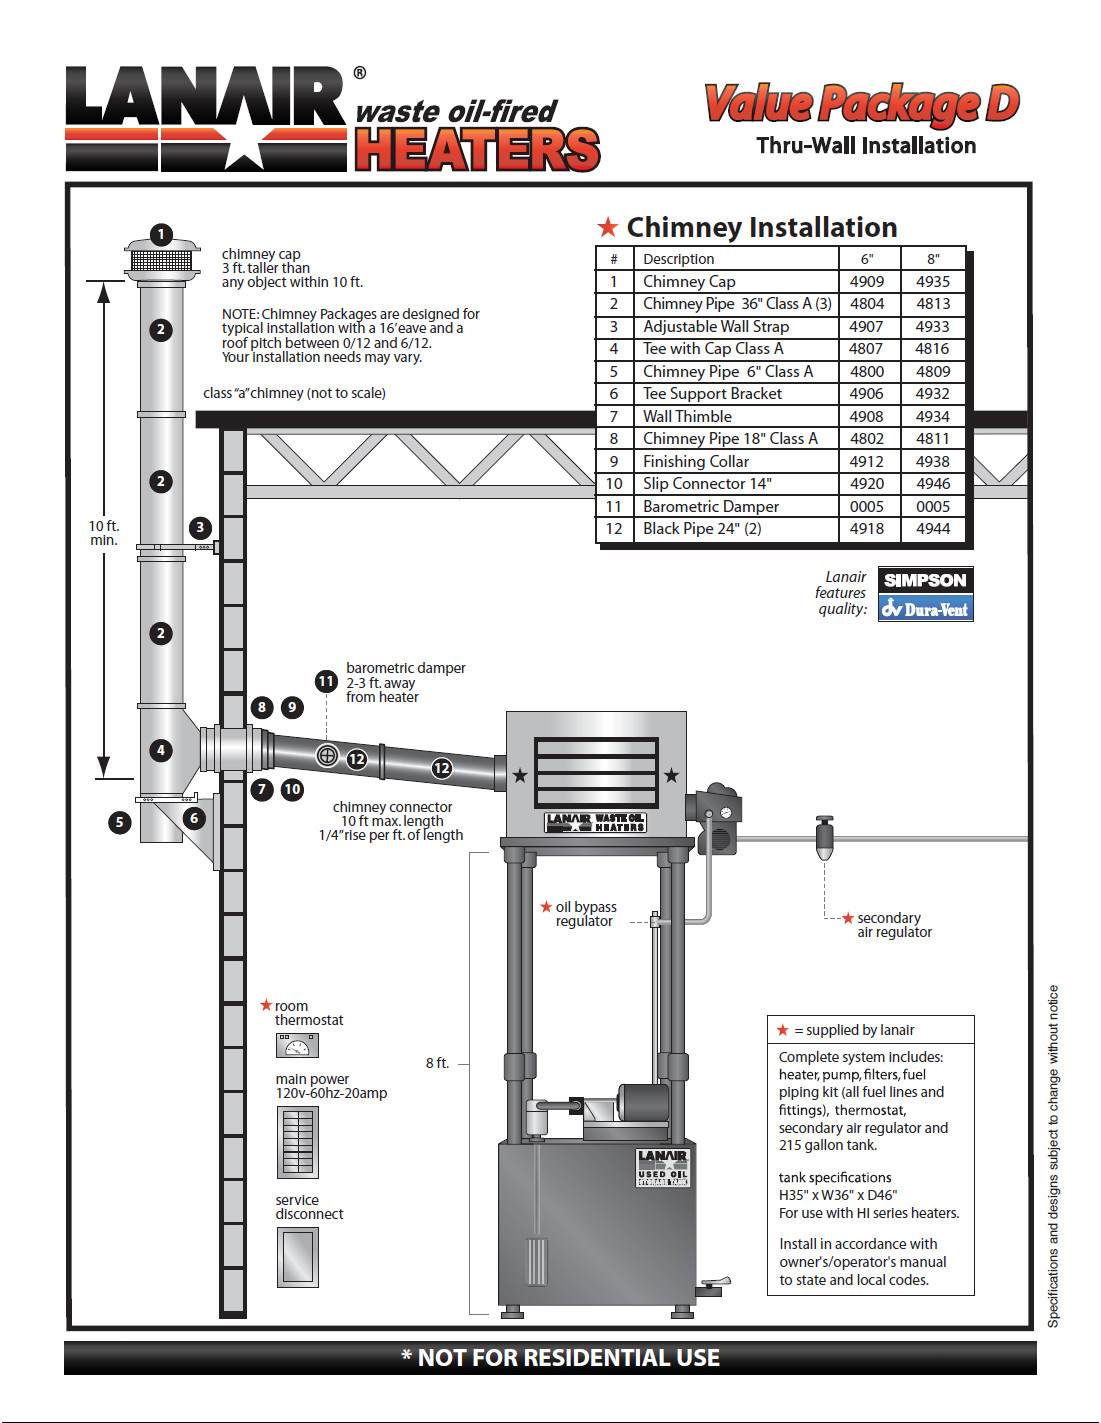 Lanair Waste Oil Wiring Diagram Detailed Schematics Heater Products Llc 250000 Btu Ceiling Mounted Forced Air Cabinet